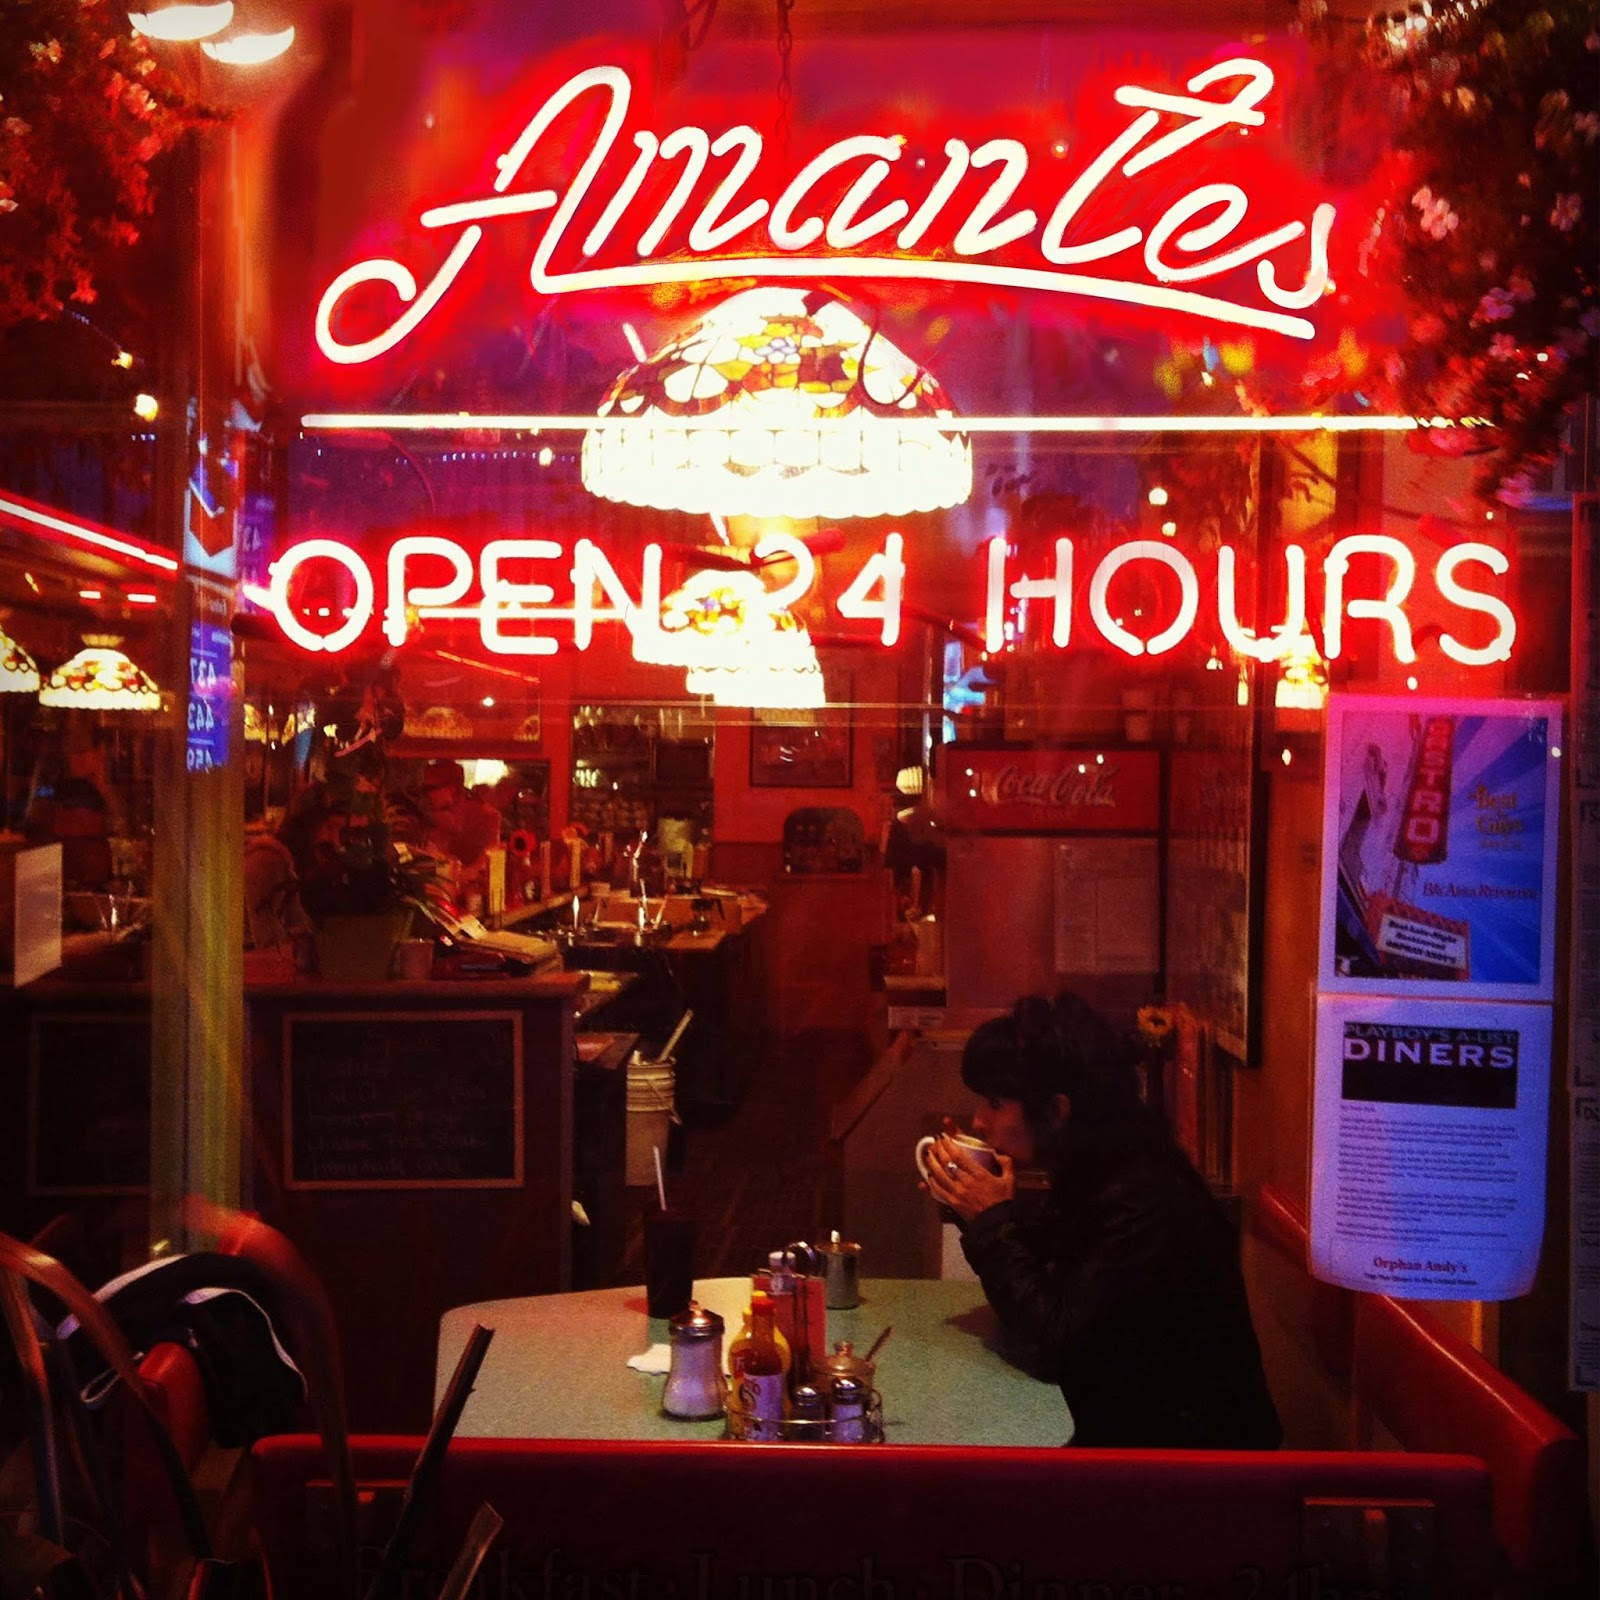 Los Amantes OPEN 24 HOURS